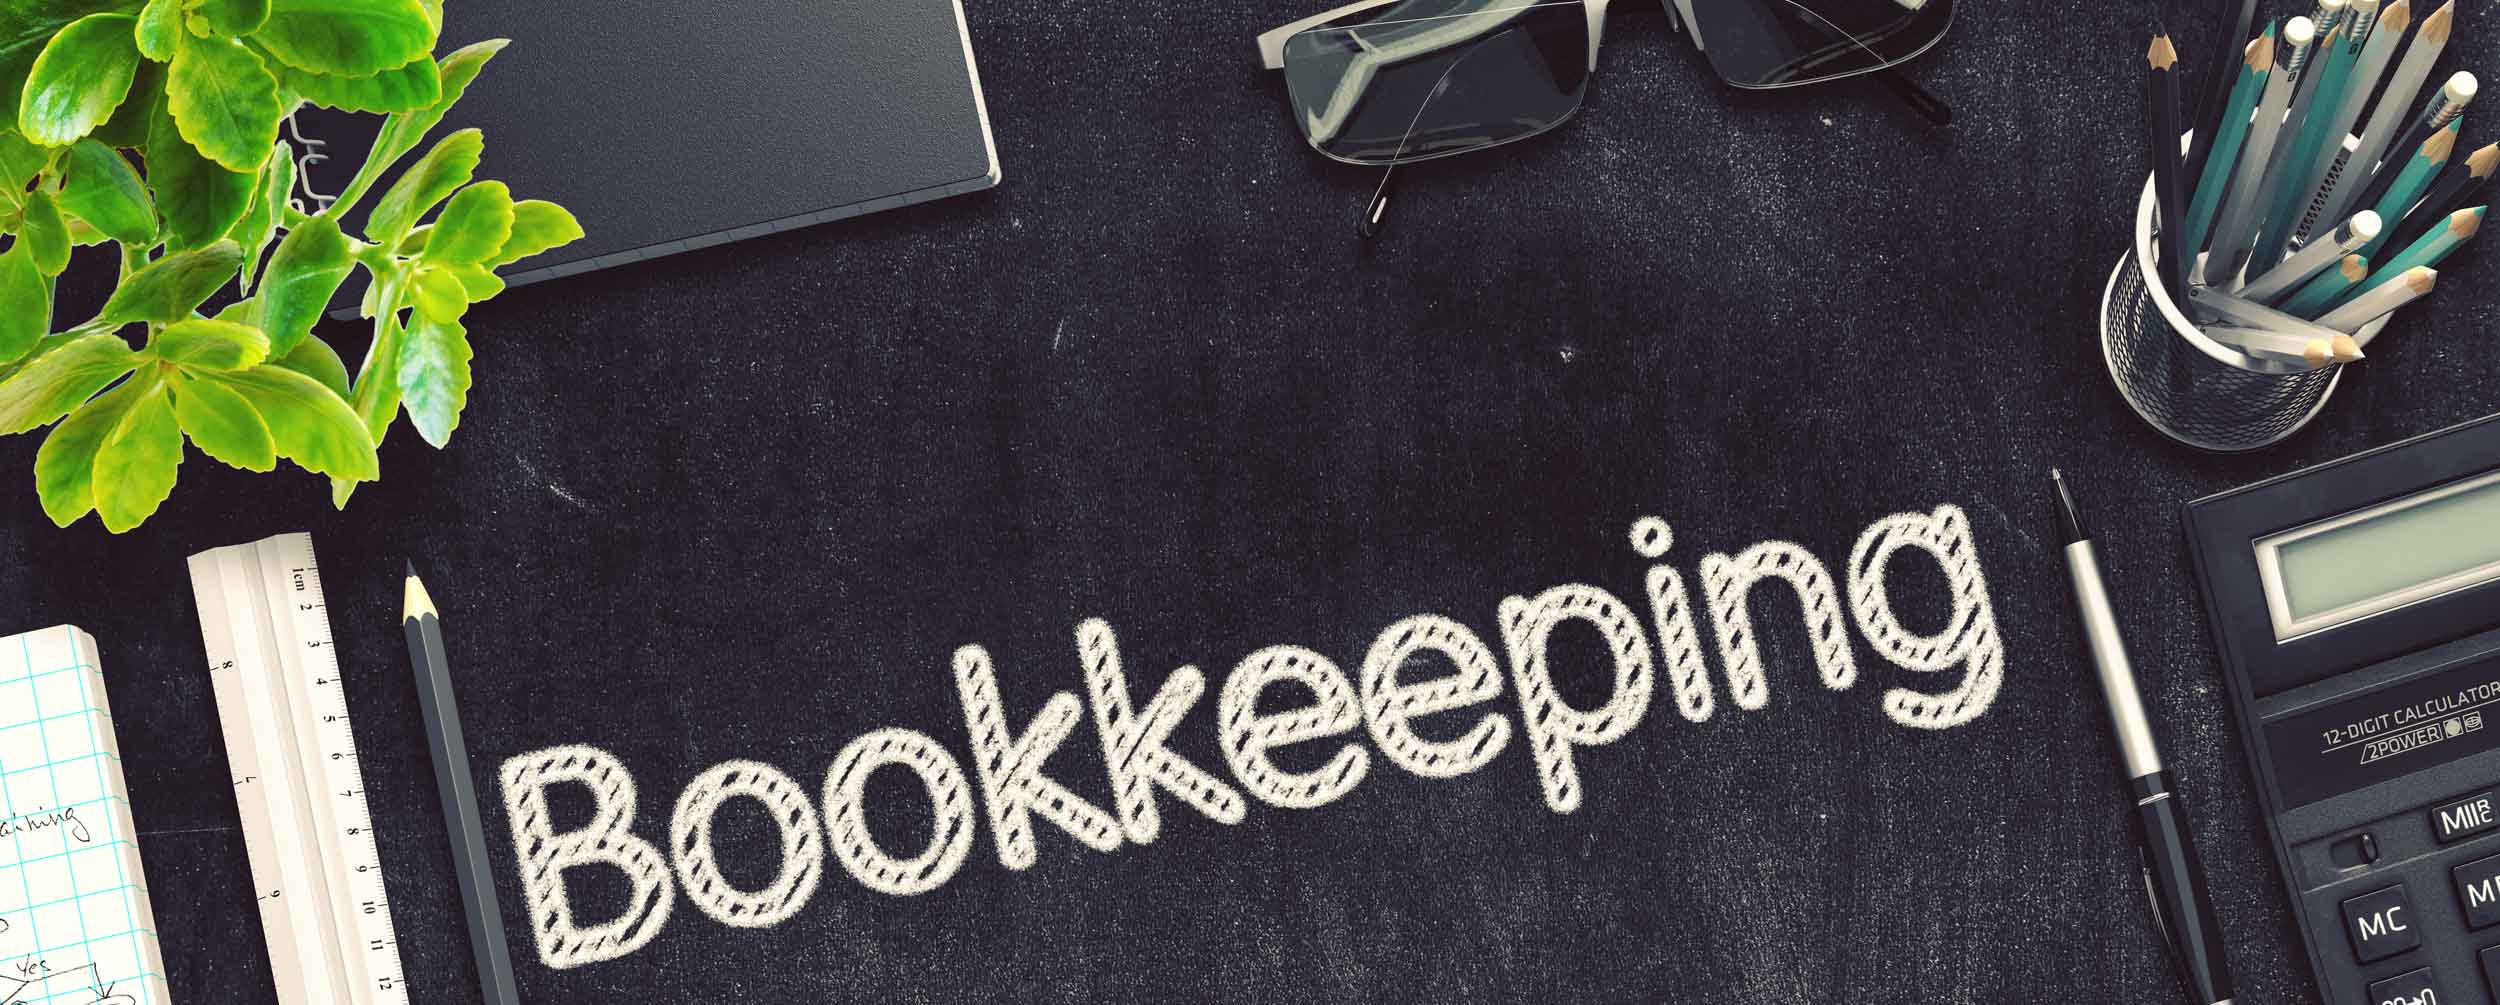 Mobile image the word Bookkeeping on a black desk with a calculator